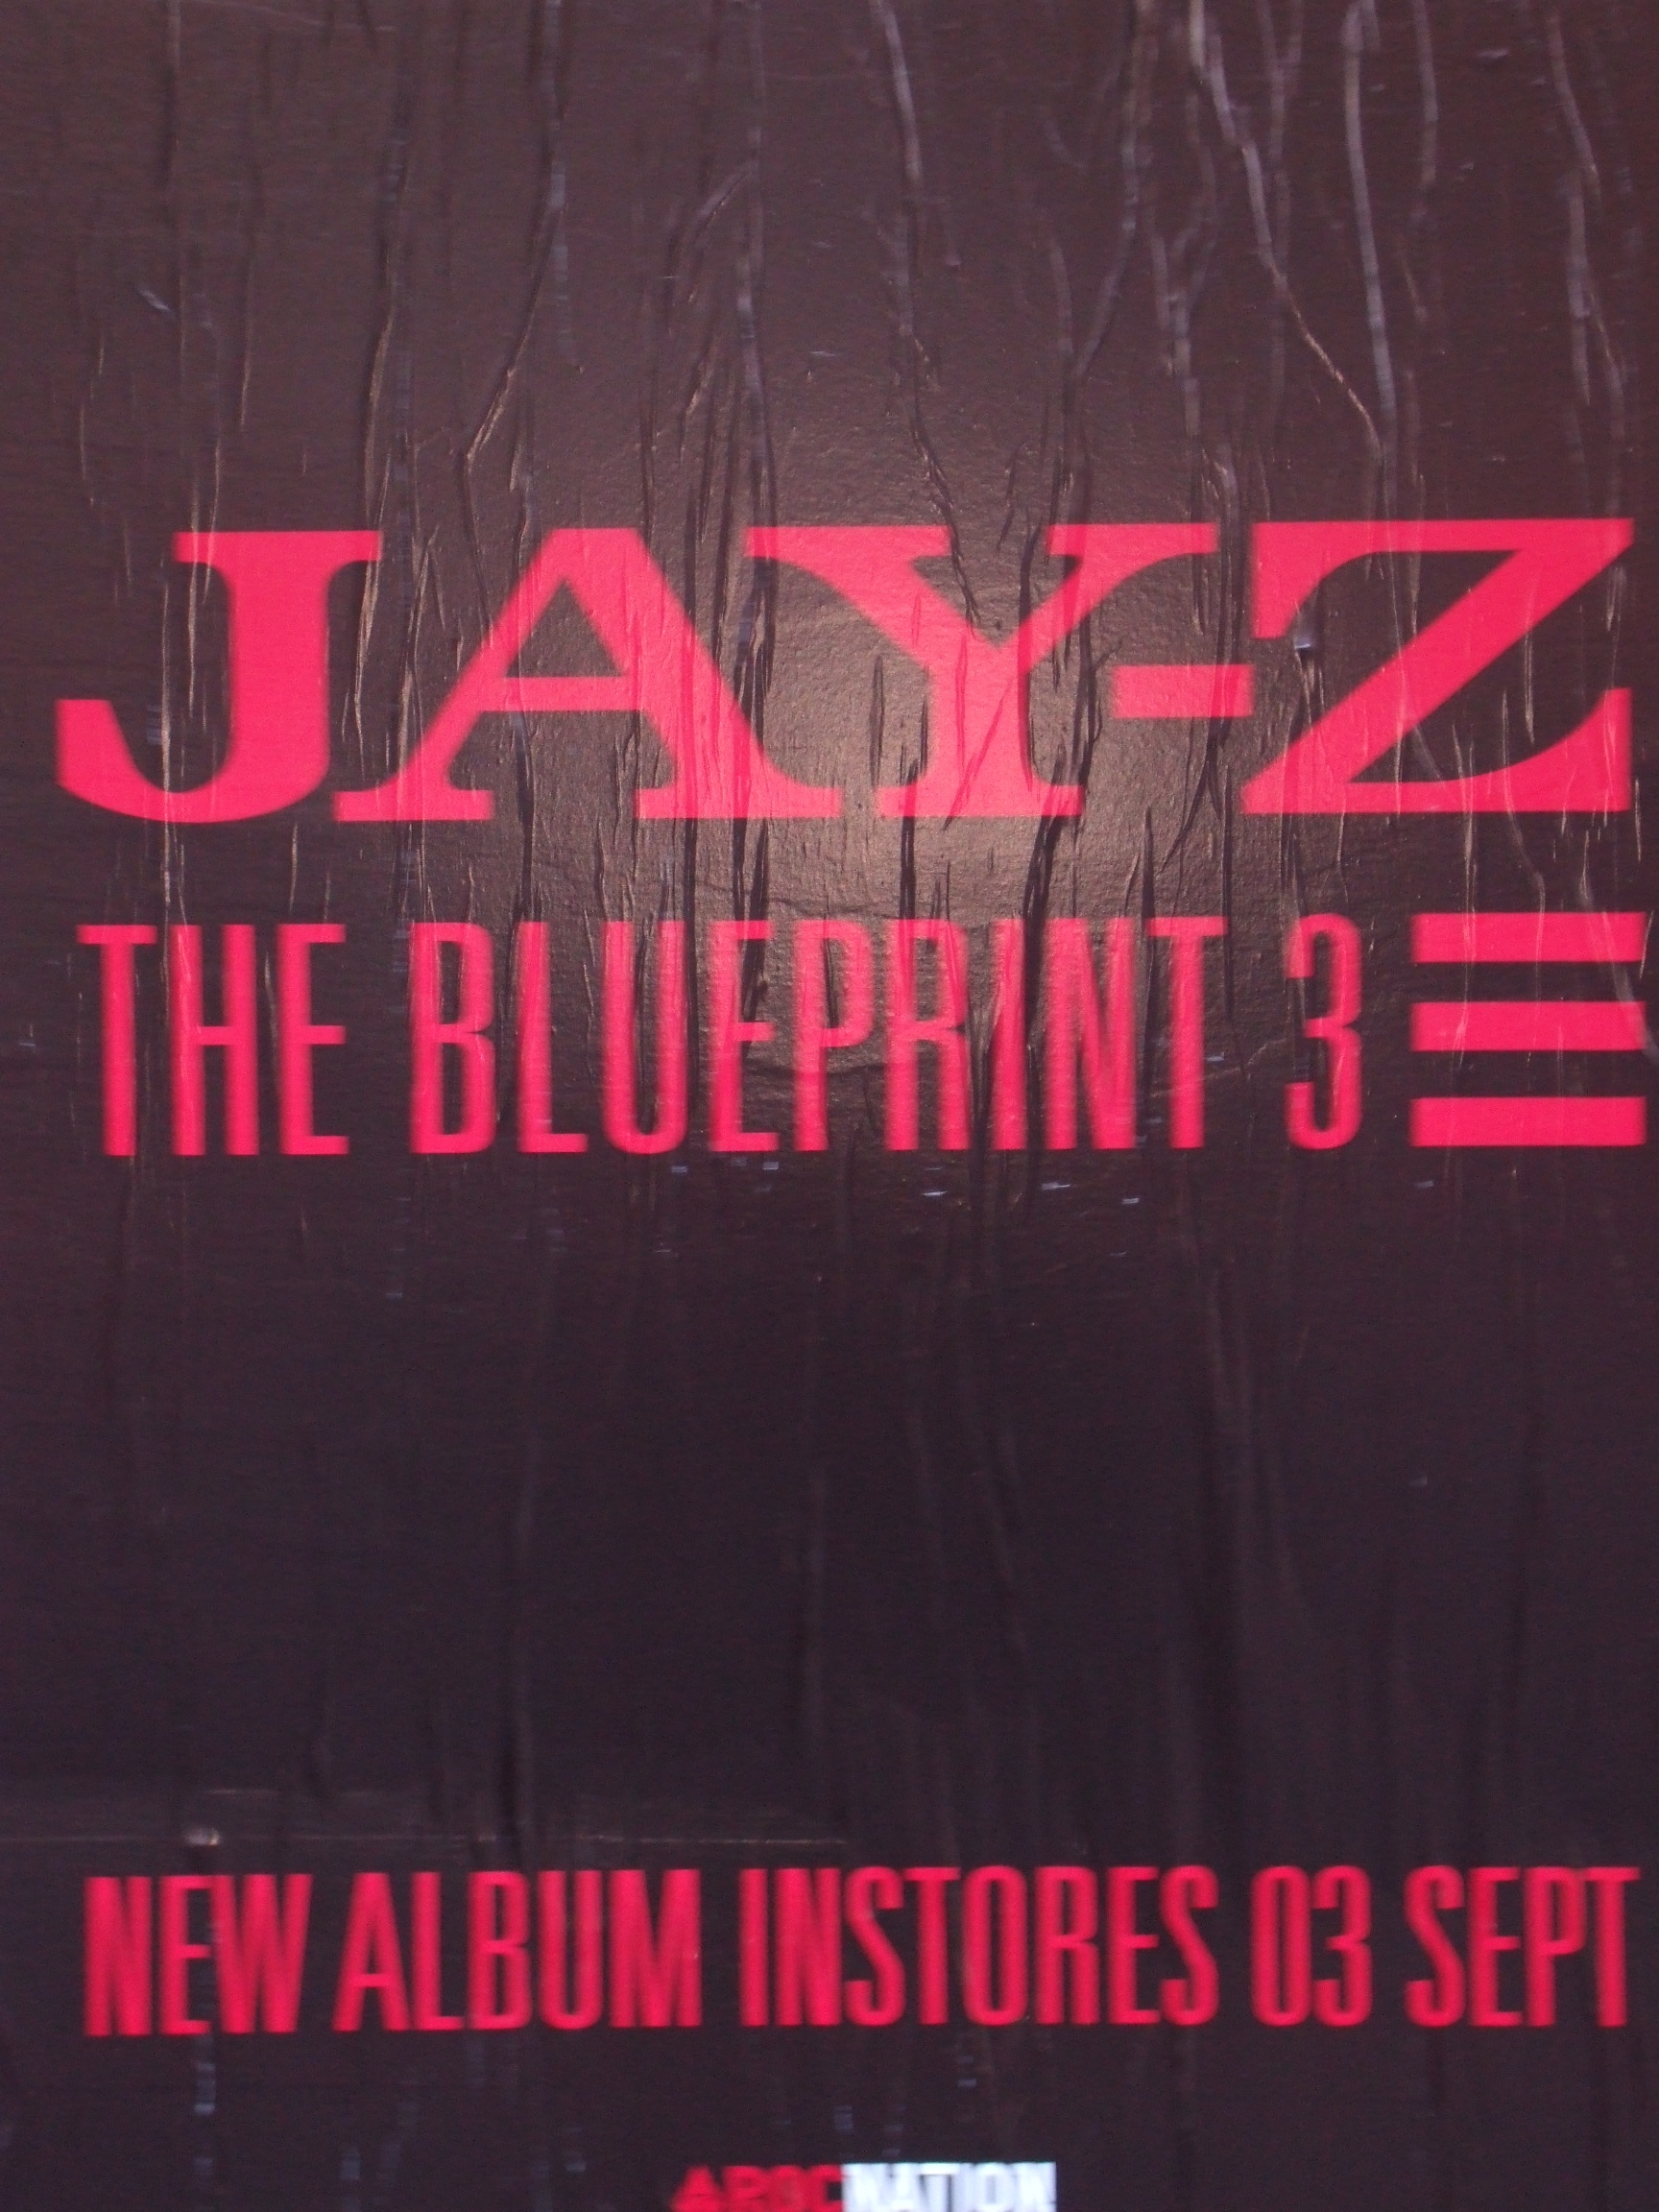 Don't Believe Everything You See; Blueprint 3 Is Not Coming Out Tomorrow